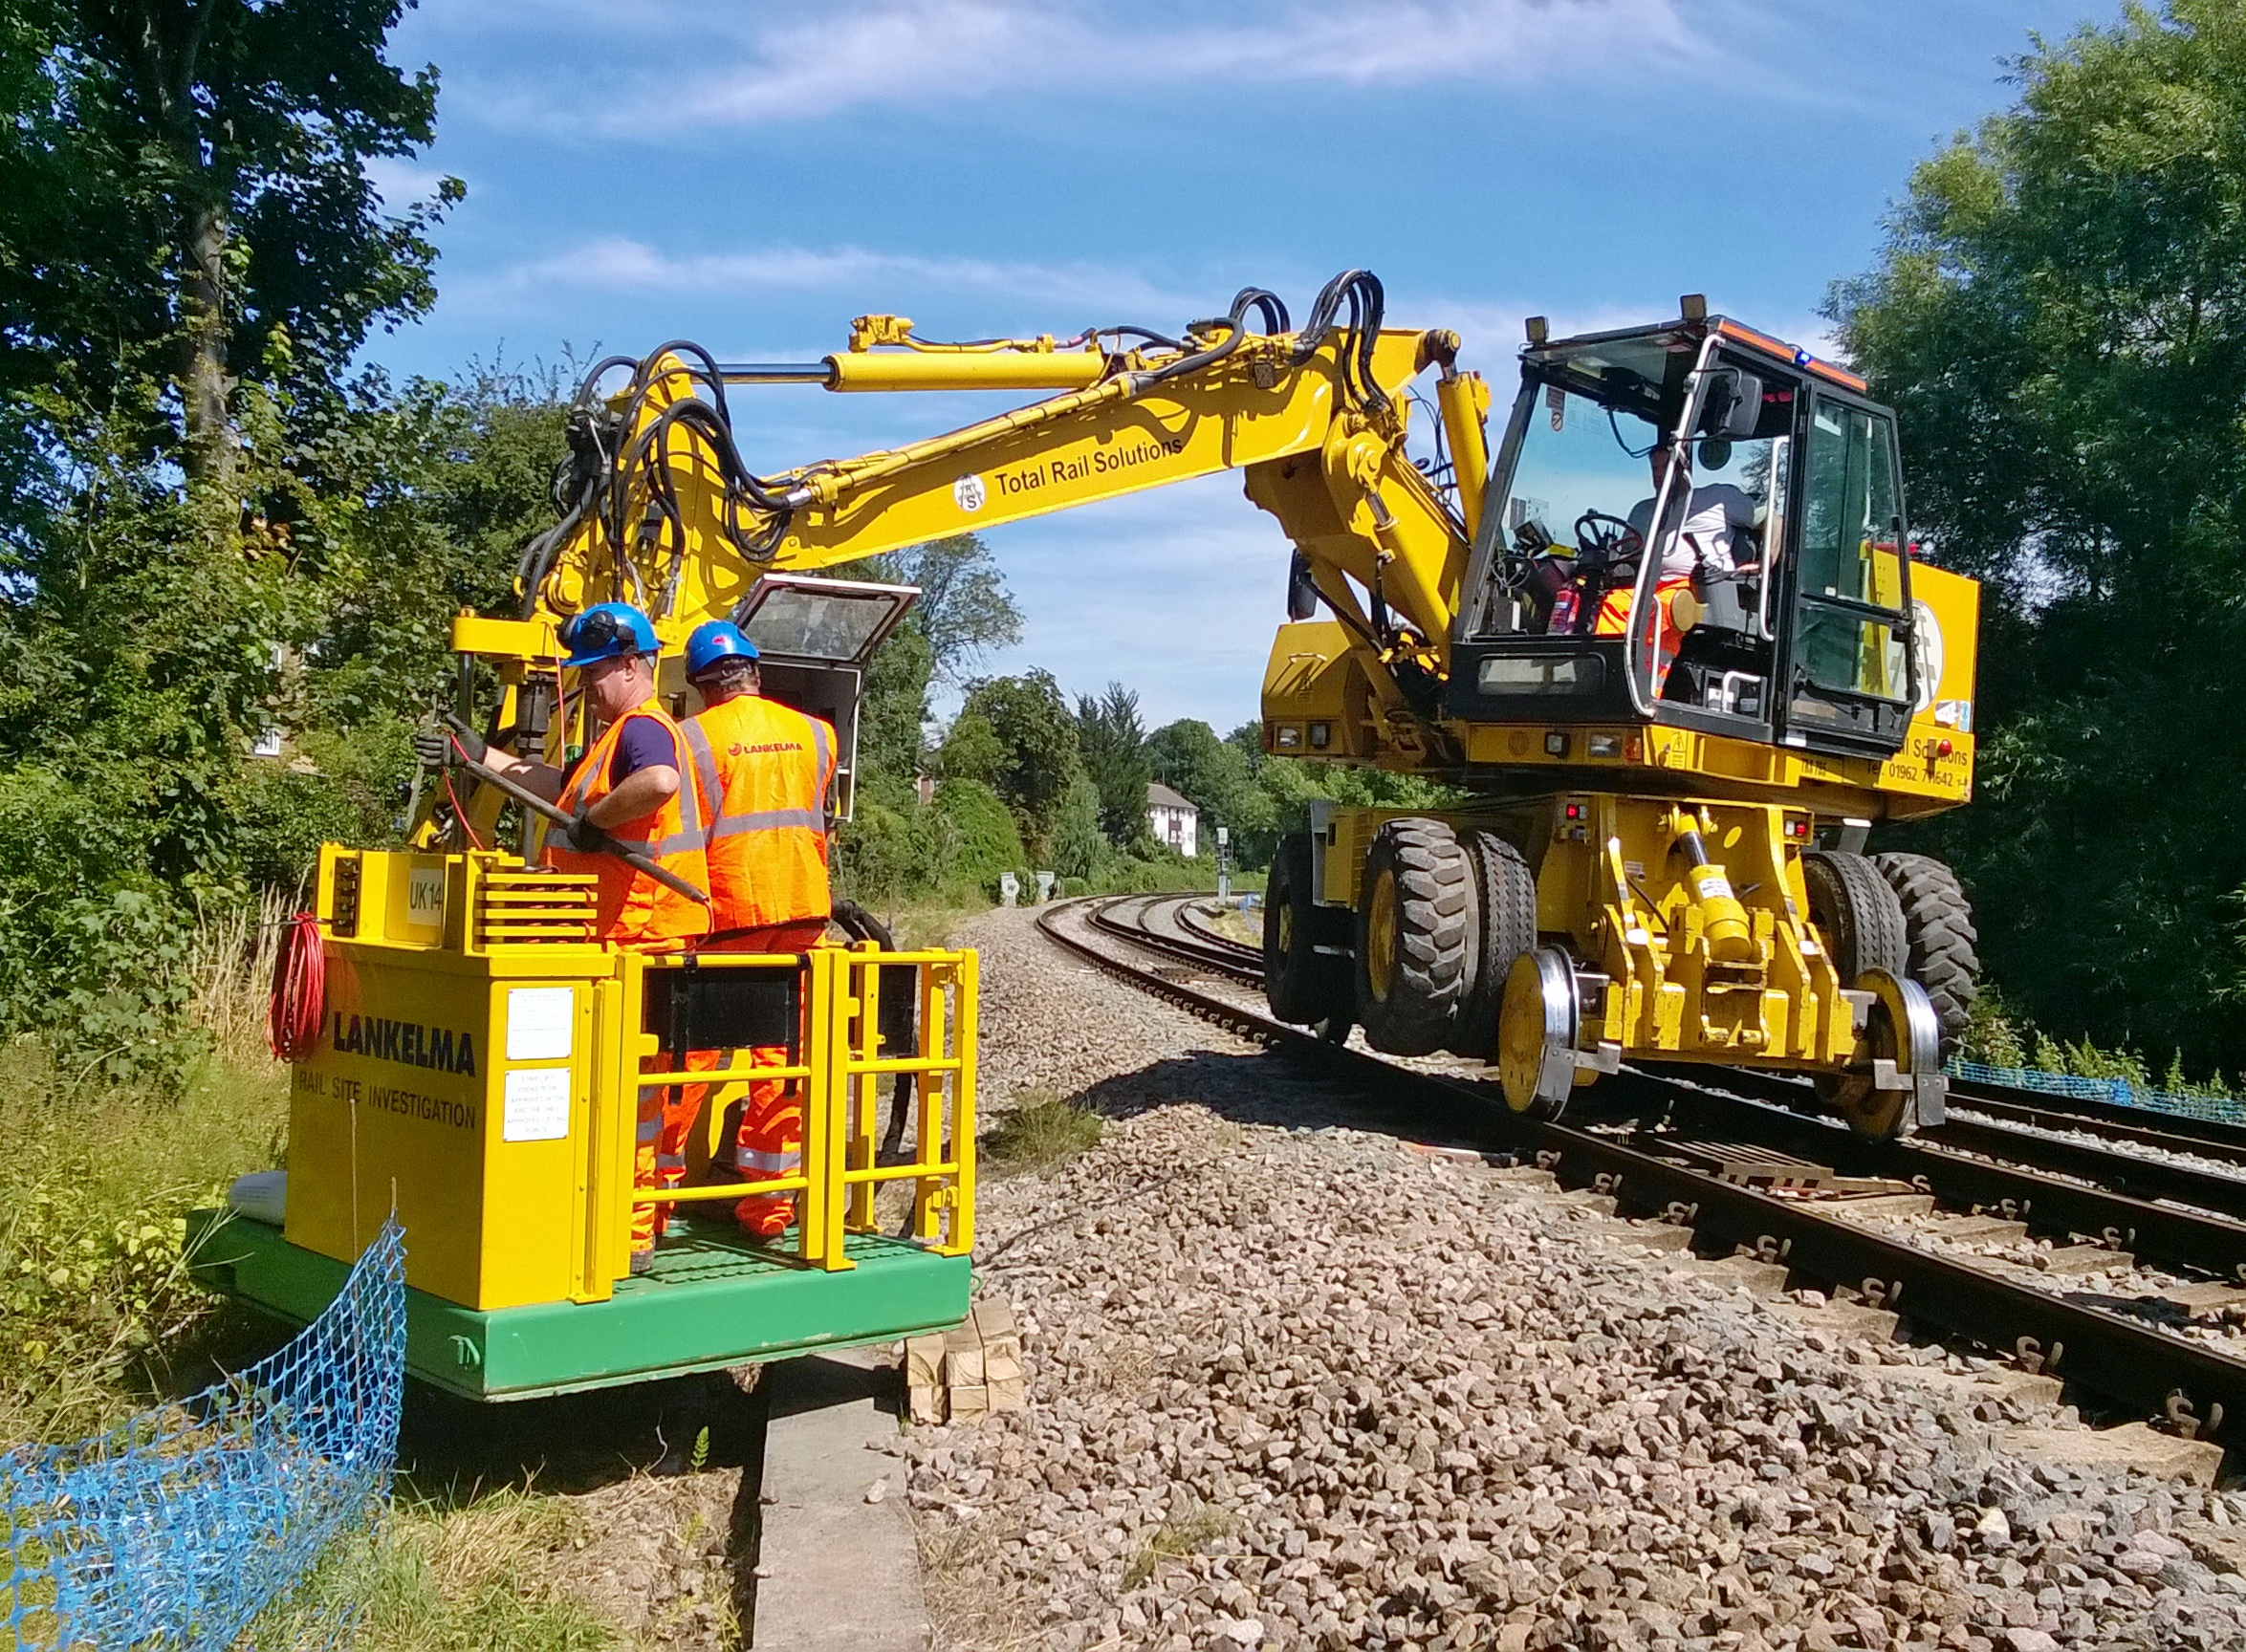 Lankelma's excavator mounted rail unit (UK14) can test all areas of the trackway